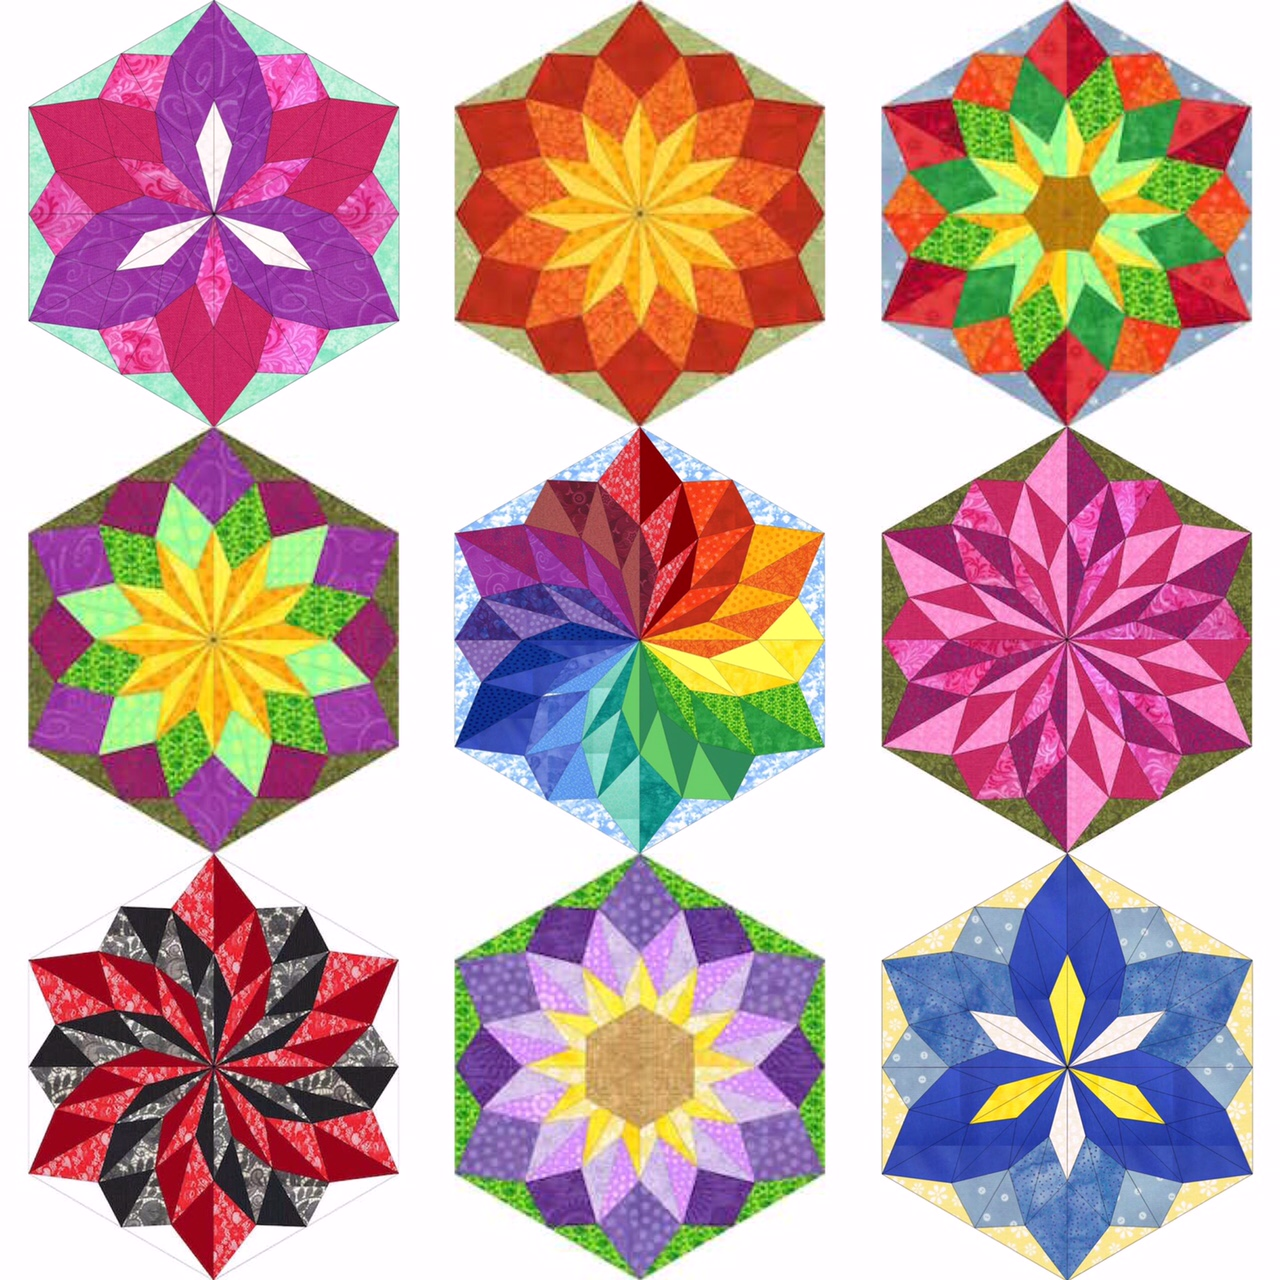 Quiltessa Patchwork palette Wish Flower 3 sizes pattern and tutorial now